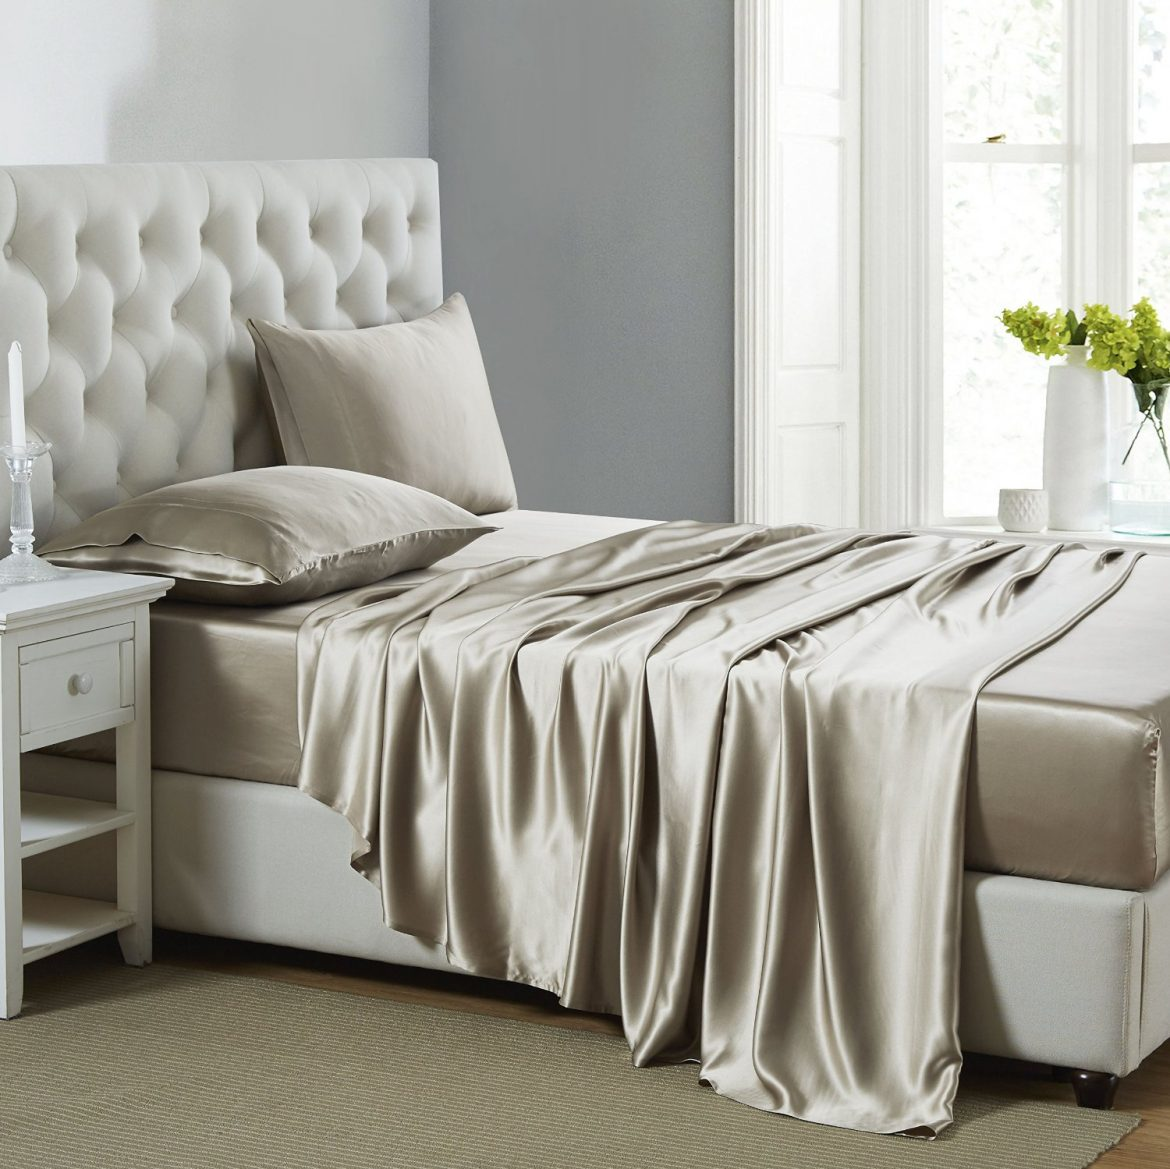 Exceptional Are Silk Sheets For You?